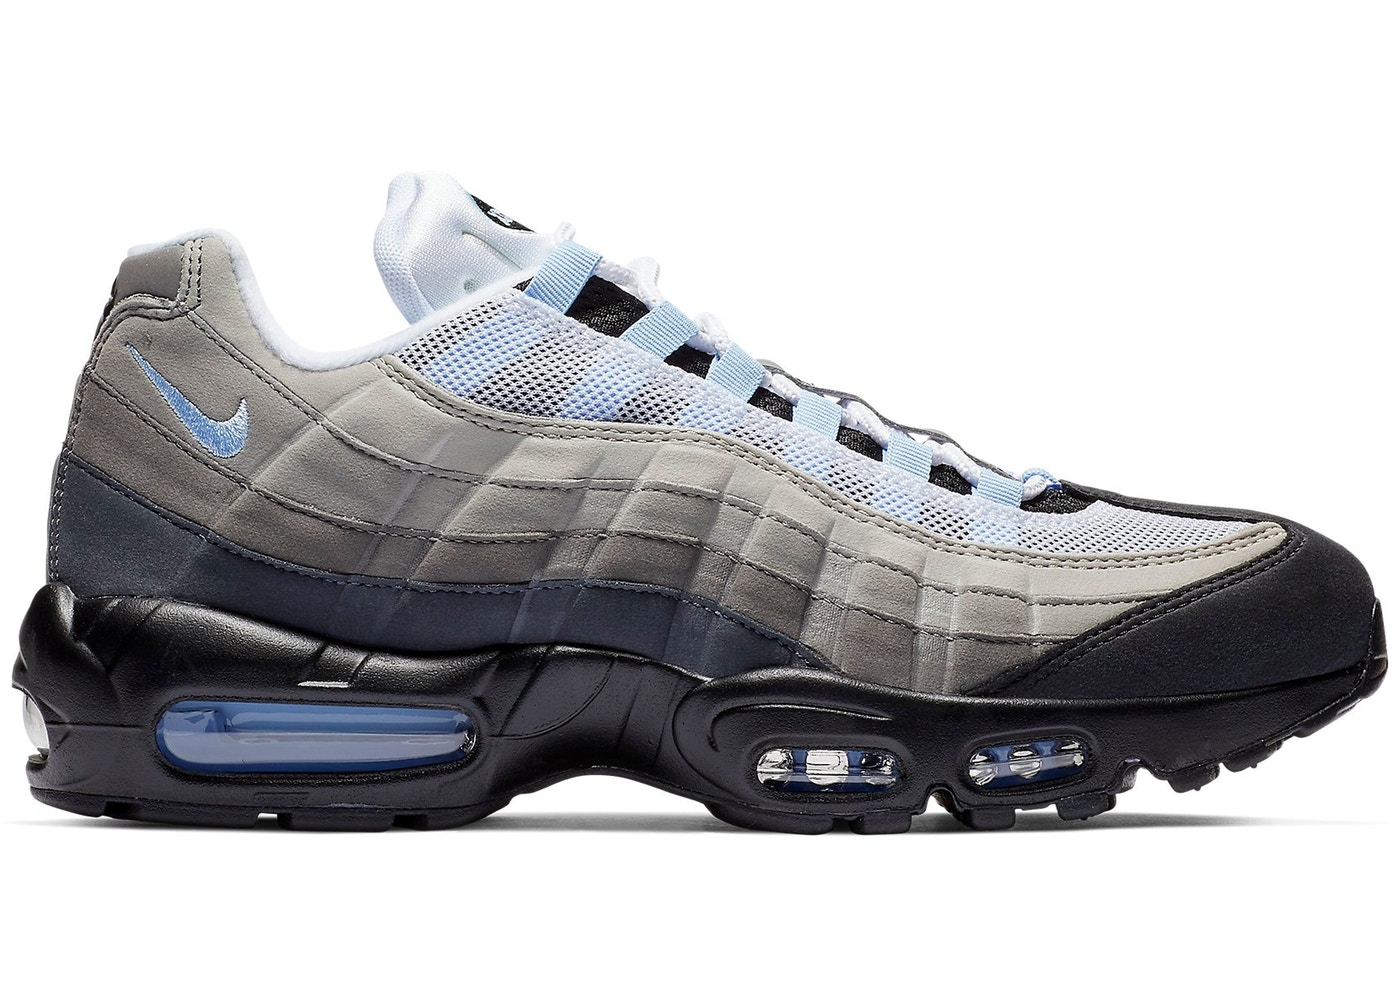 8e044ebeb2a Buy Nike Air Max 95 Shoes   Deadstock Sneakers